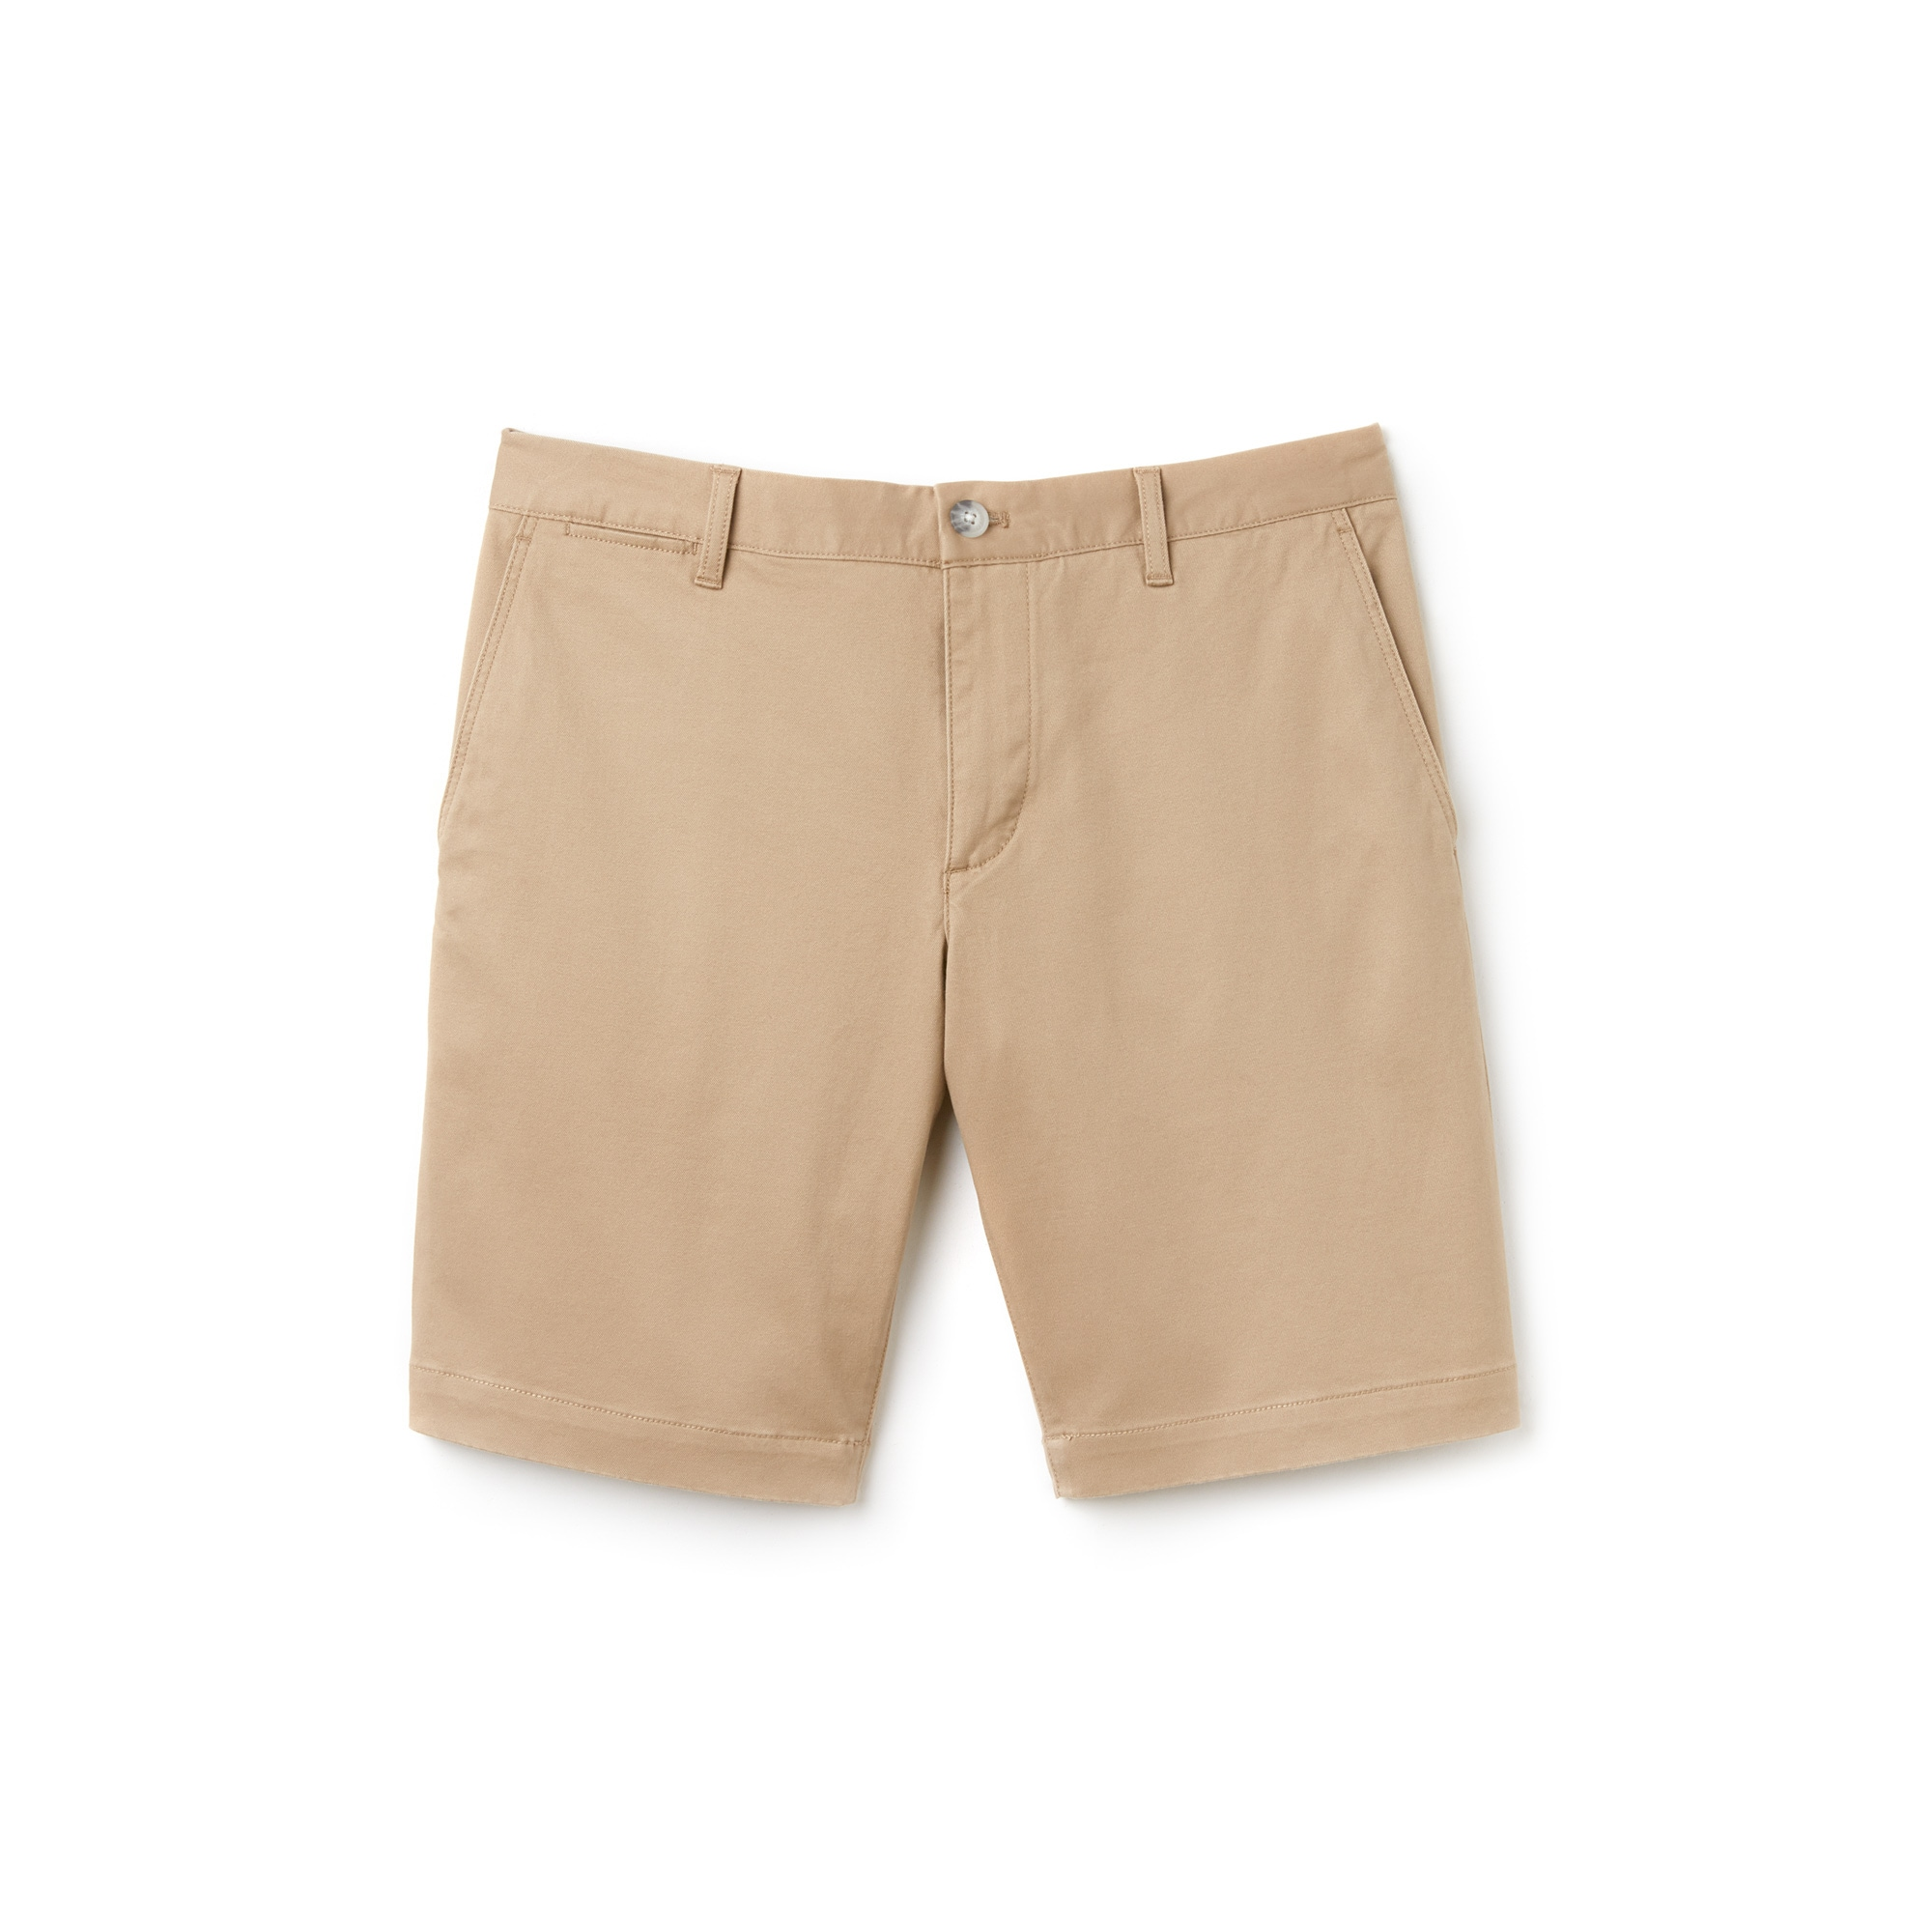 Slim Fit Herren-Bermudas aus Stretch-Gabardine